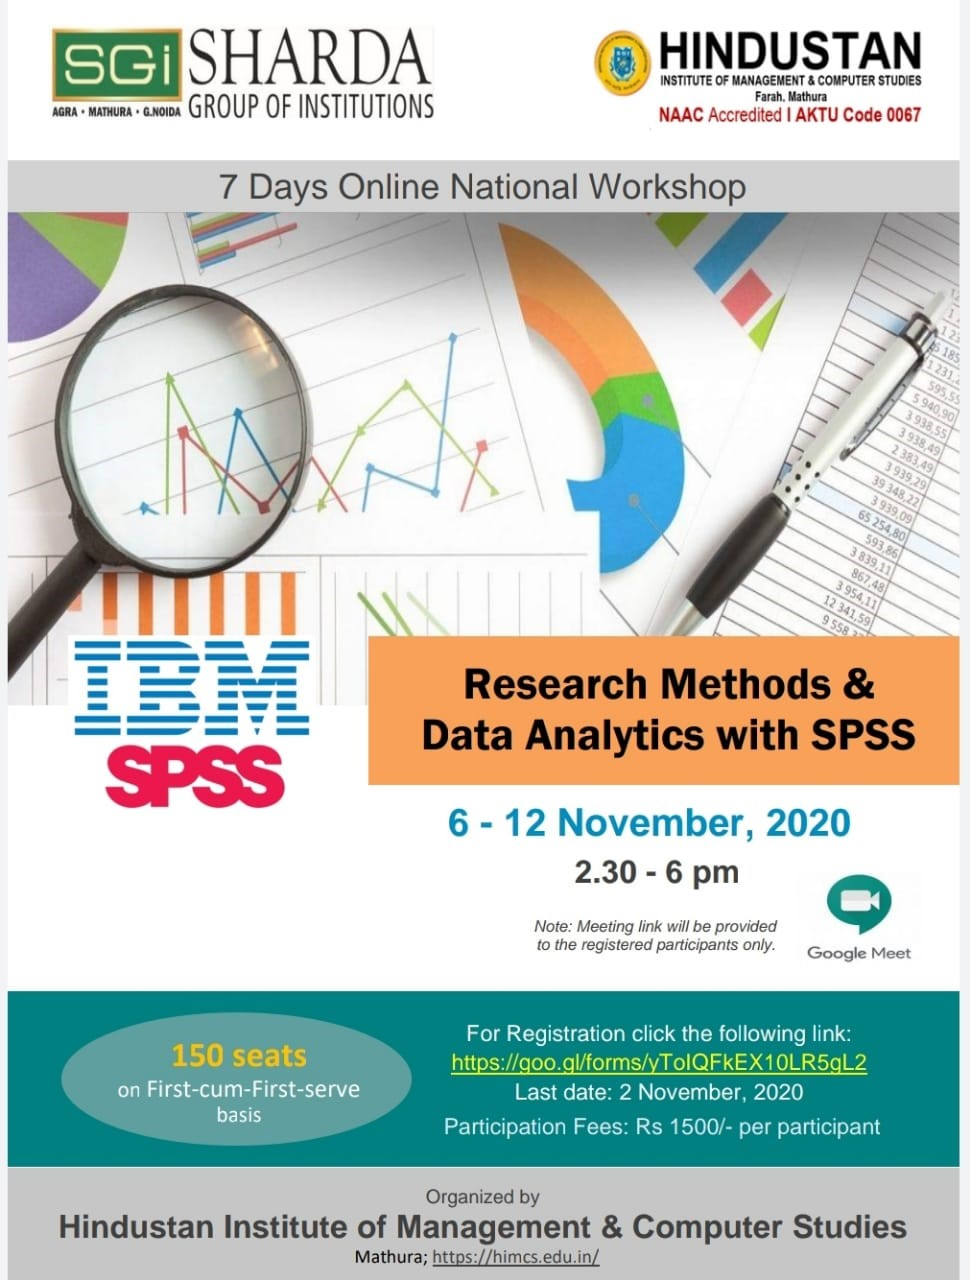 7 days Online National Workshop on Research Methods & Data Analytics with SPSS